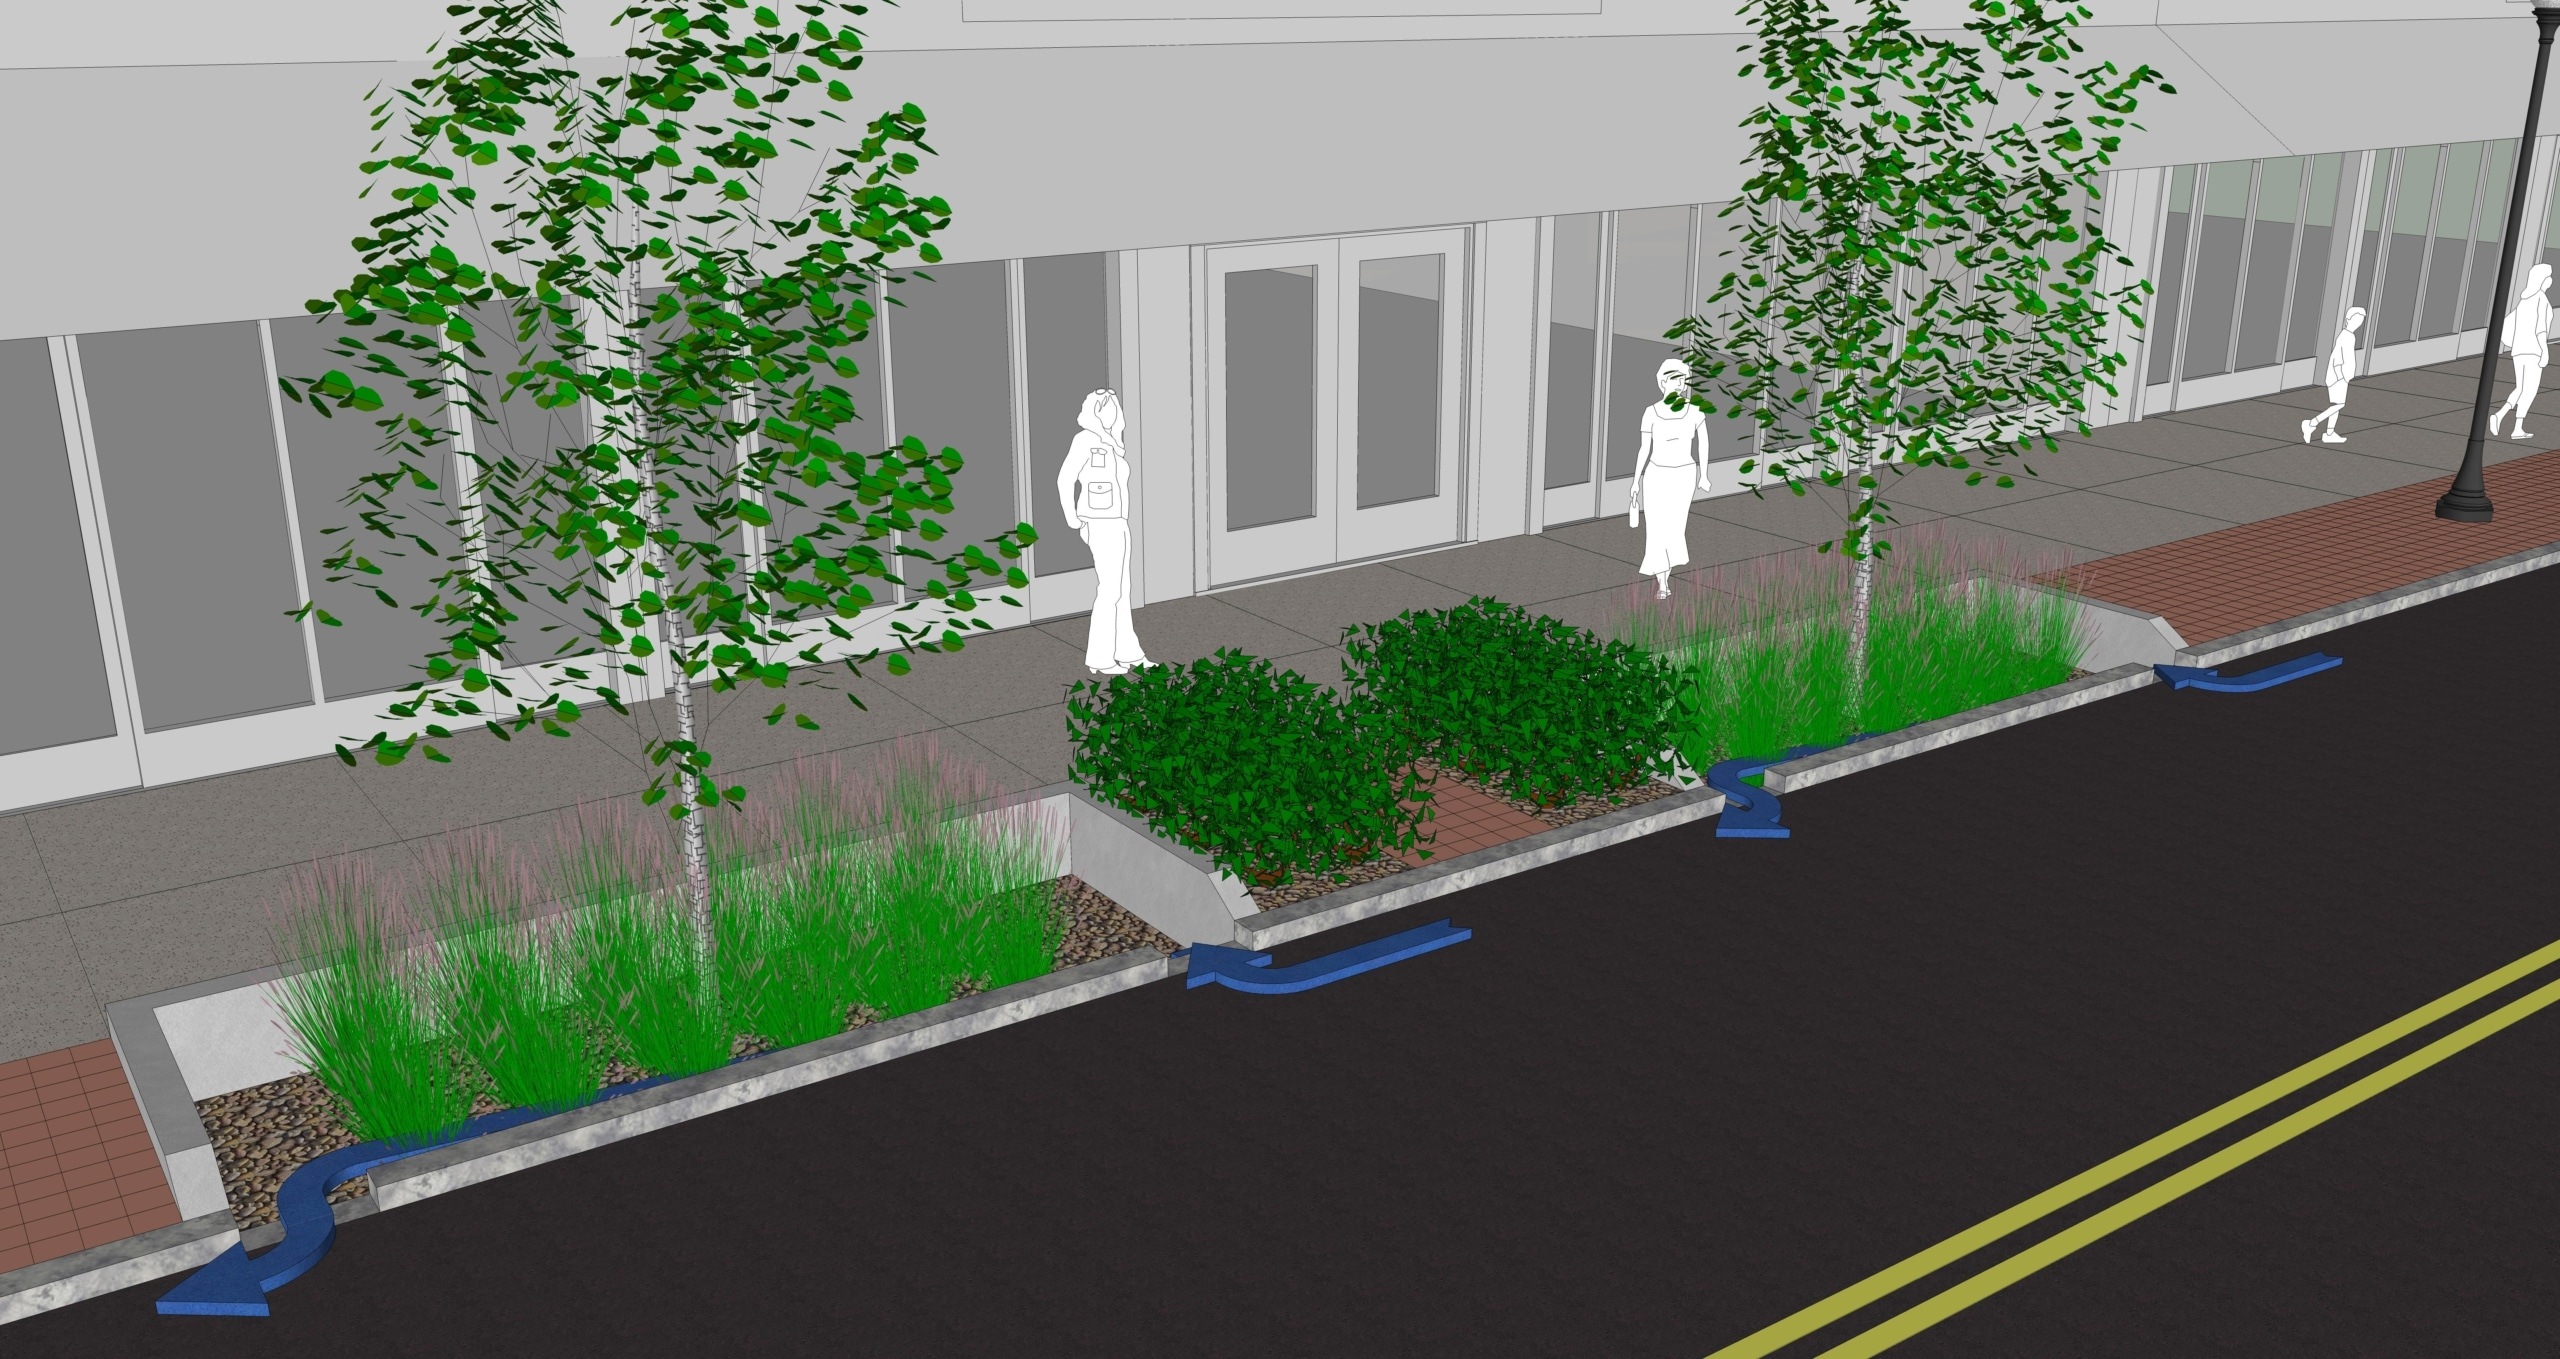 TSW Bioswale Juniper Street Bioswale Testing Begins Soon Landscape Architecture Sustainable Design  stormwater management streetscape midtown alliance TSW Midtown Atlanta Juniper Street Bioswale   TSW